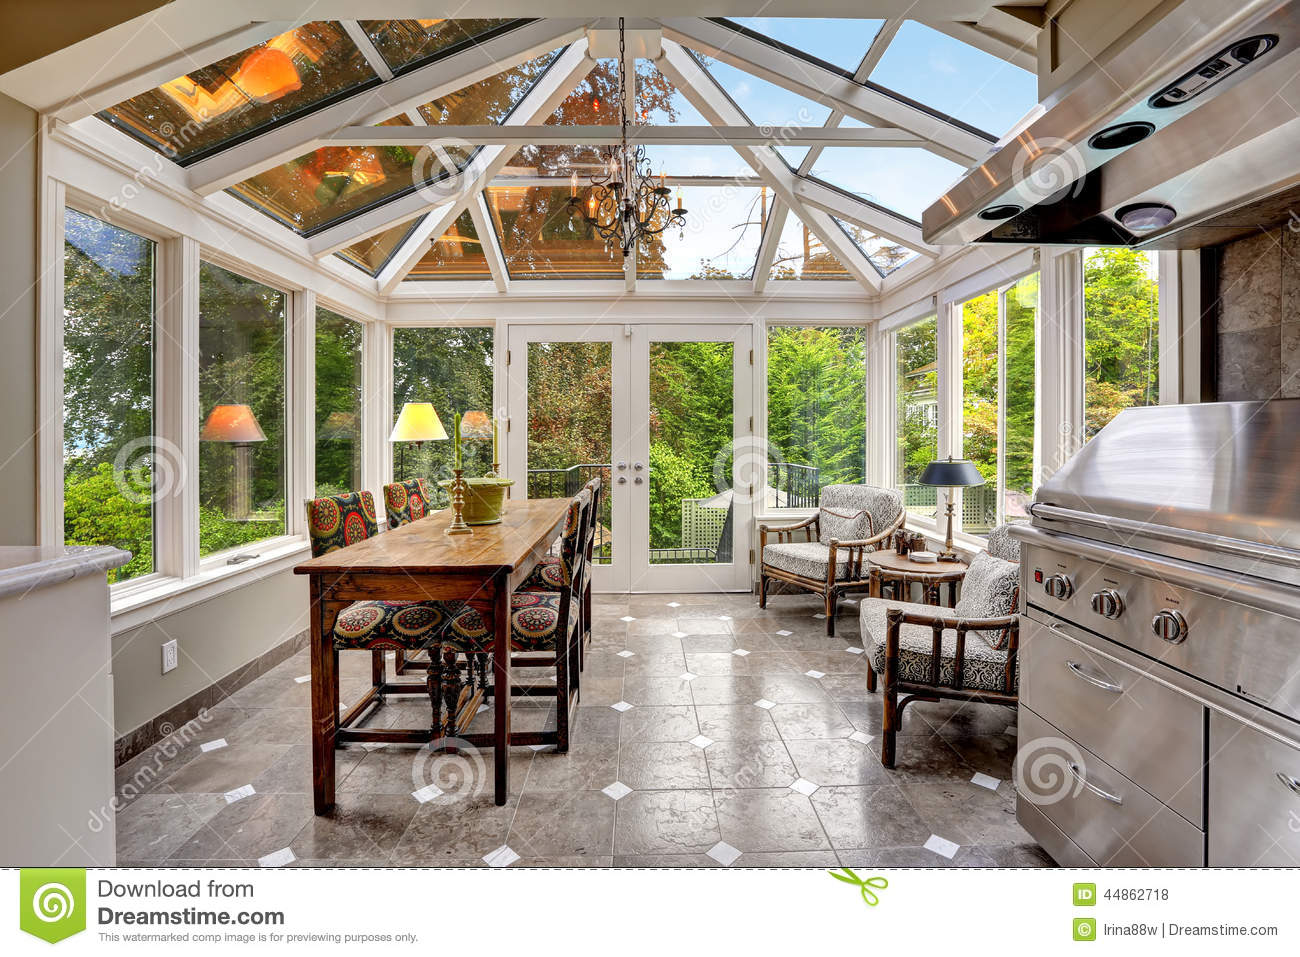 modern coffered ceiling ideas - Sunroom Patio Area With Transparent Vaulted Ceiling Stock